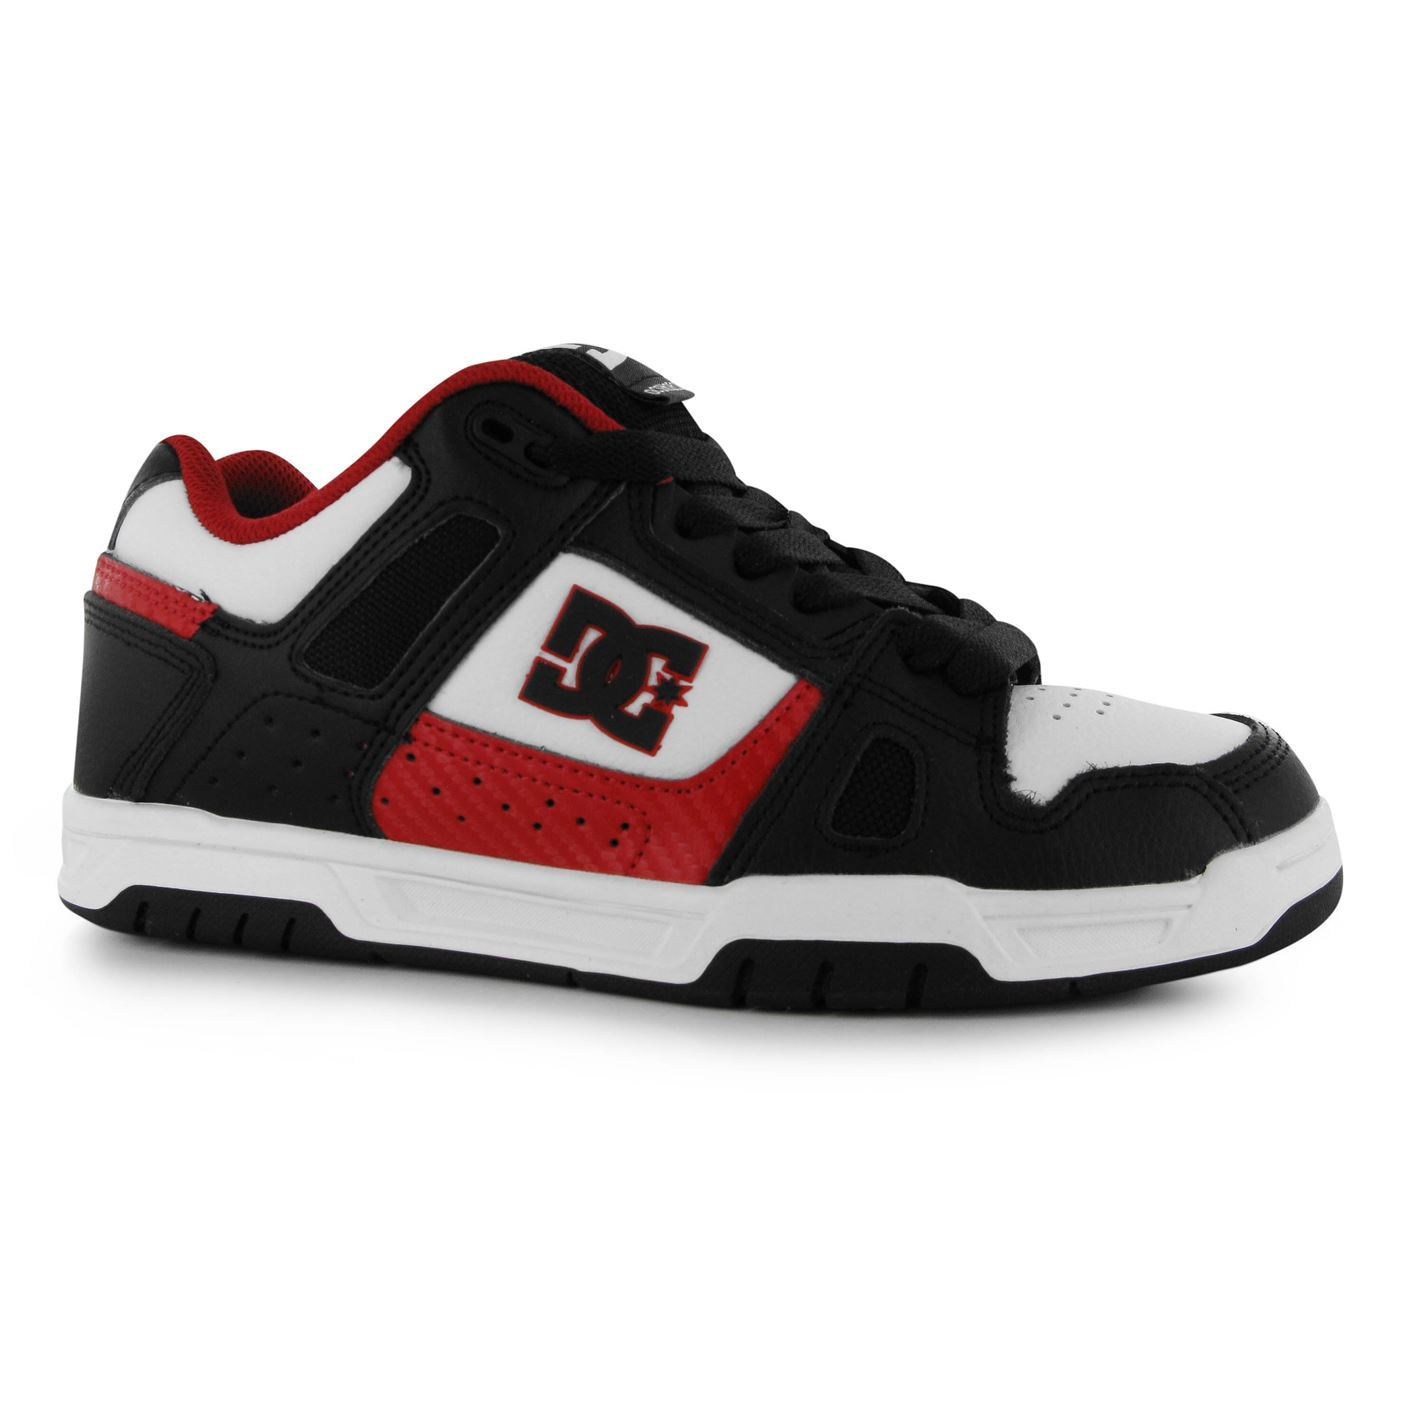 Skate shoes ankle support - Dc Mens Stag Skate Shoes Leather Trainers Lace Up Sneakers Ankle Support